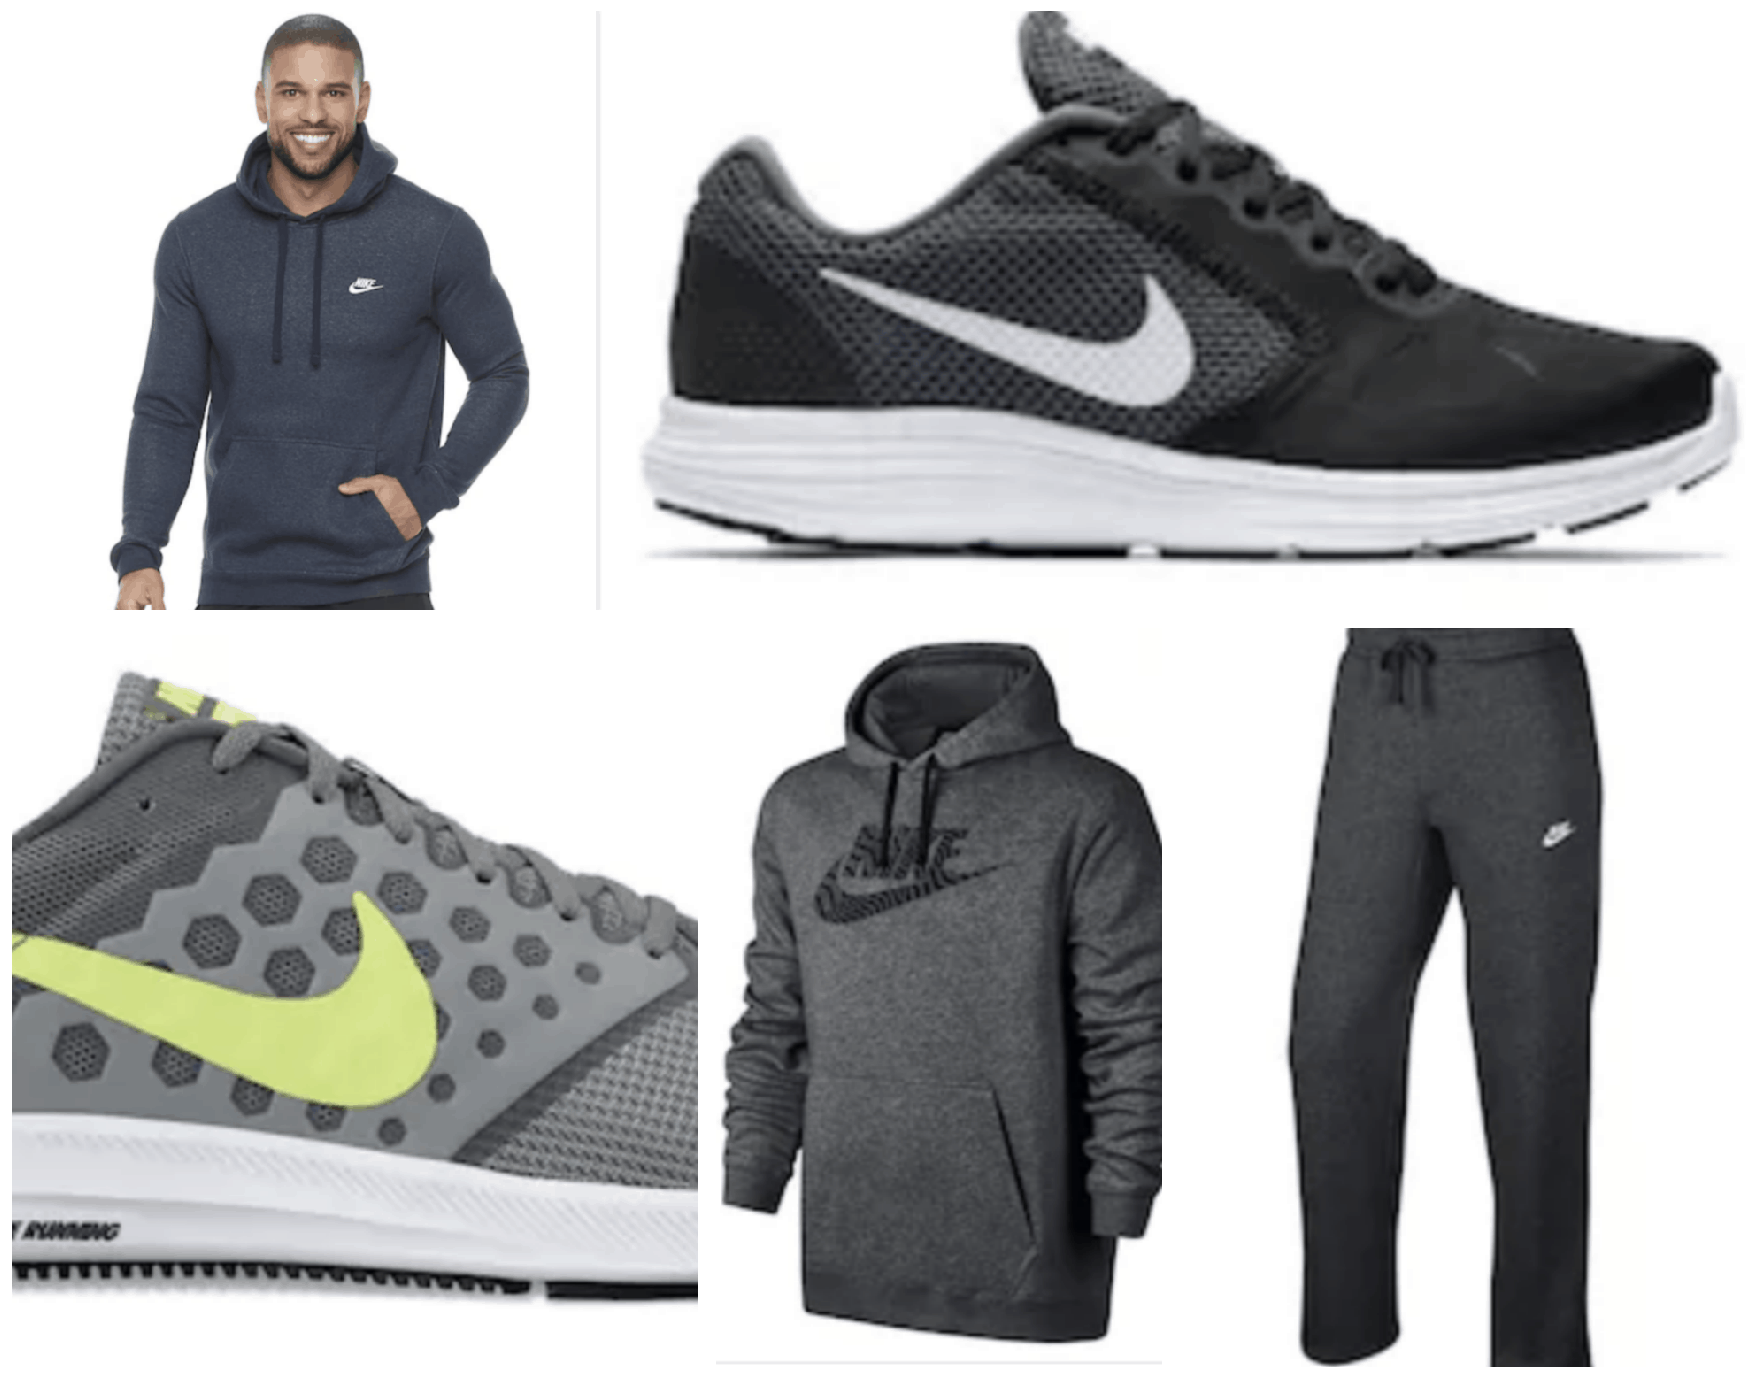 e5bd3312f56b2 Nike Downshifter Shoes only  22.49 At Kohl s!